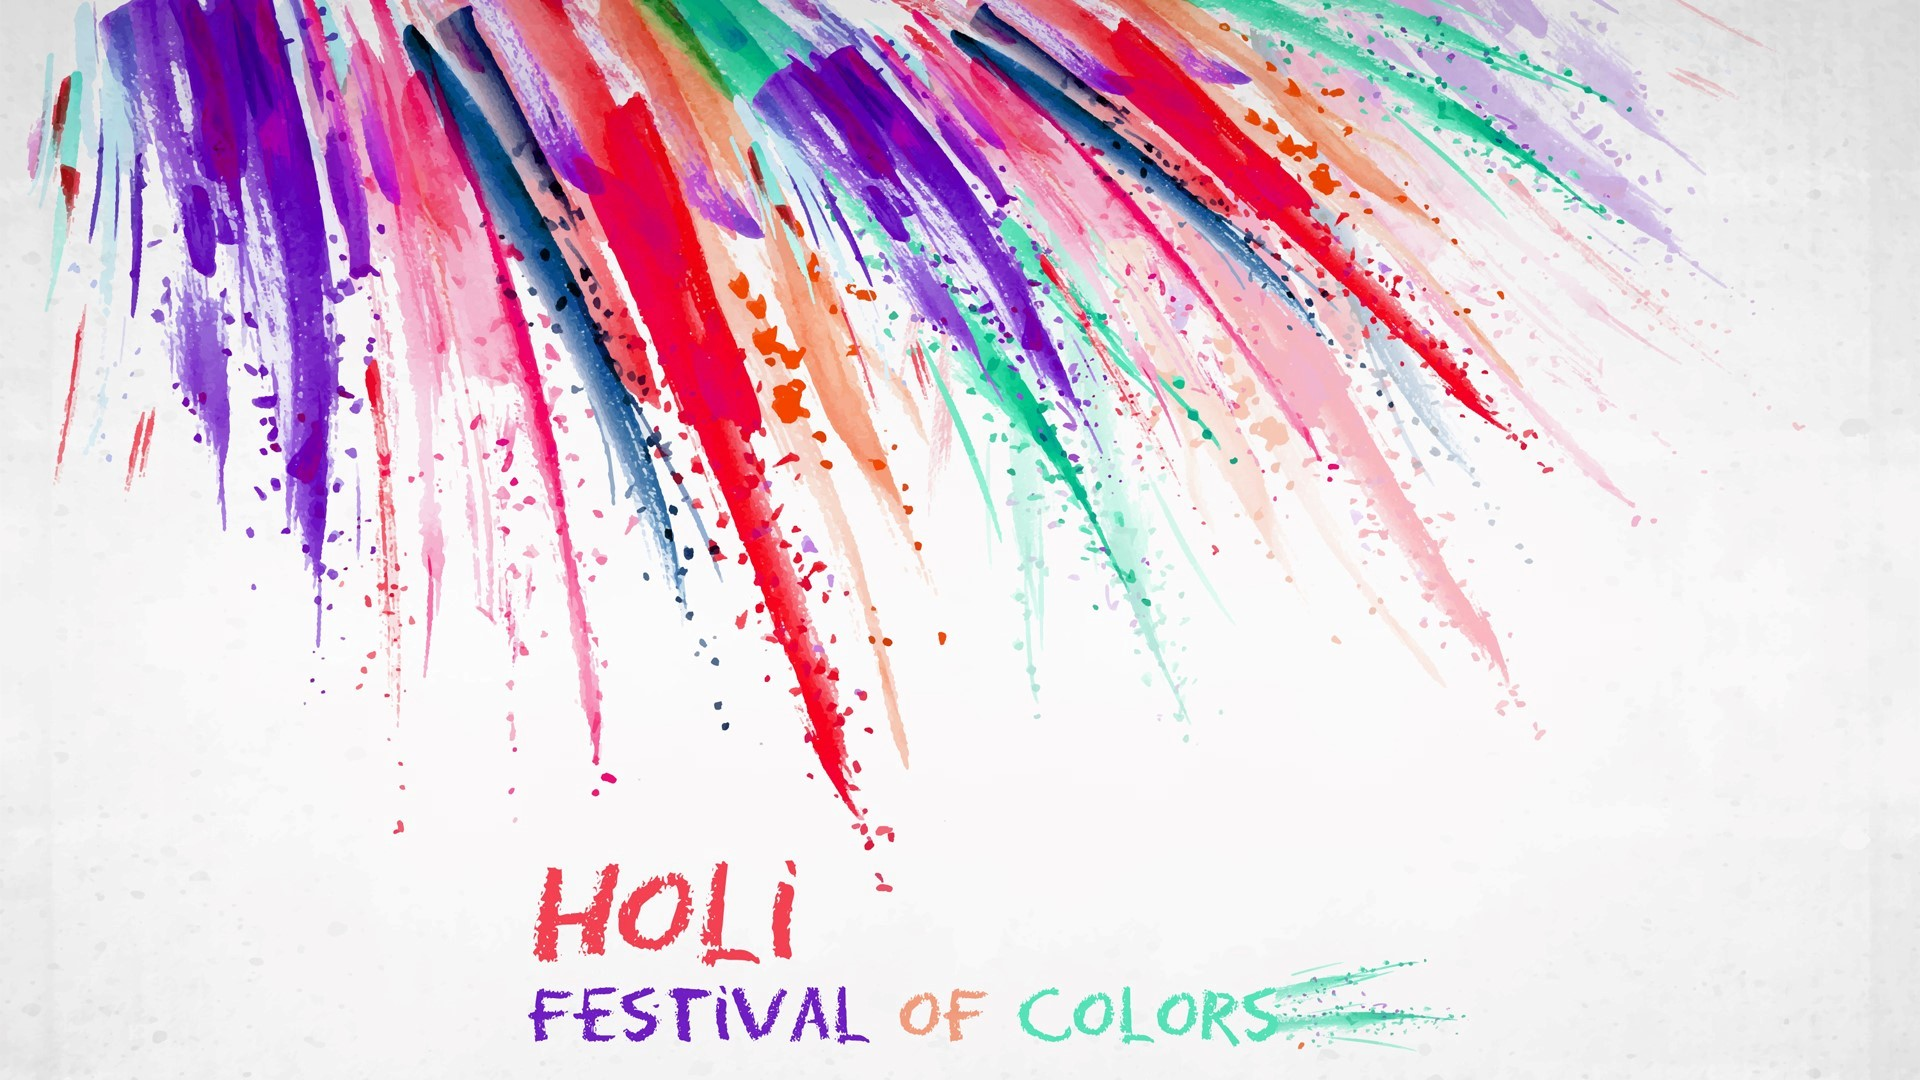 Holi Festival Of Colors HD Wallpaper HD Wallpapers 1920x1080